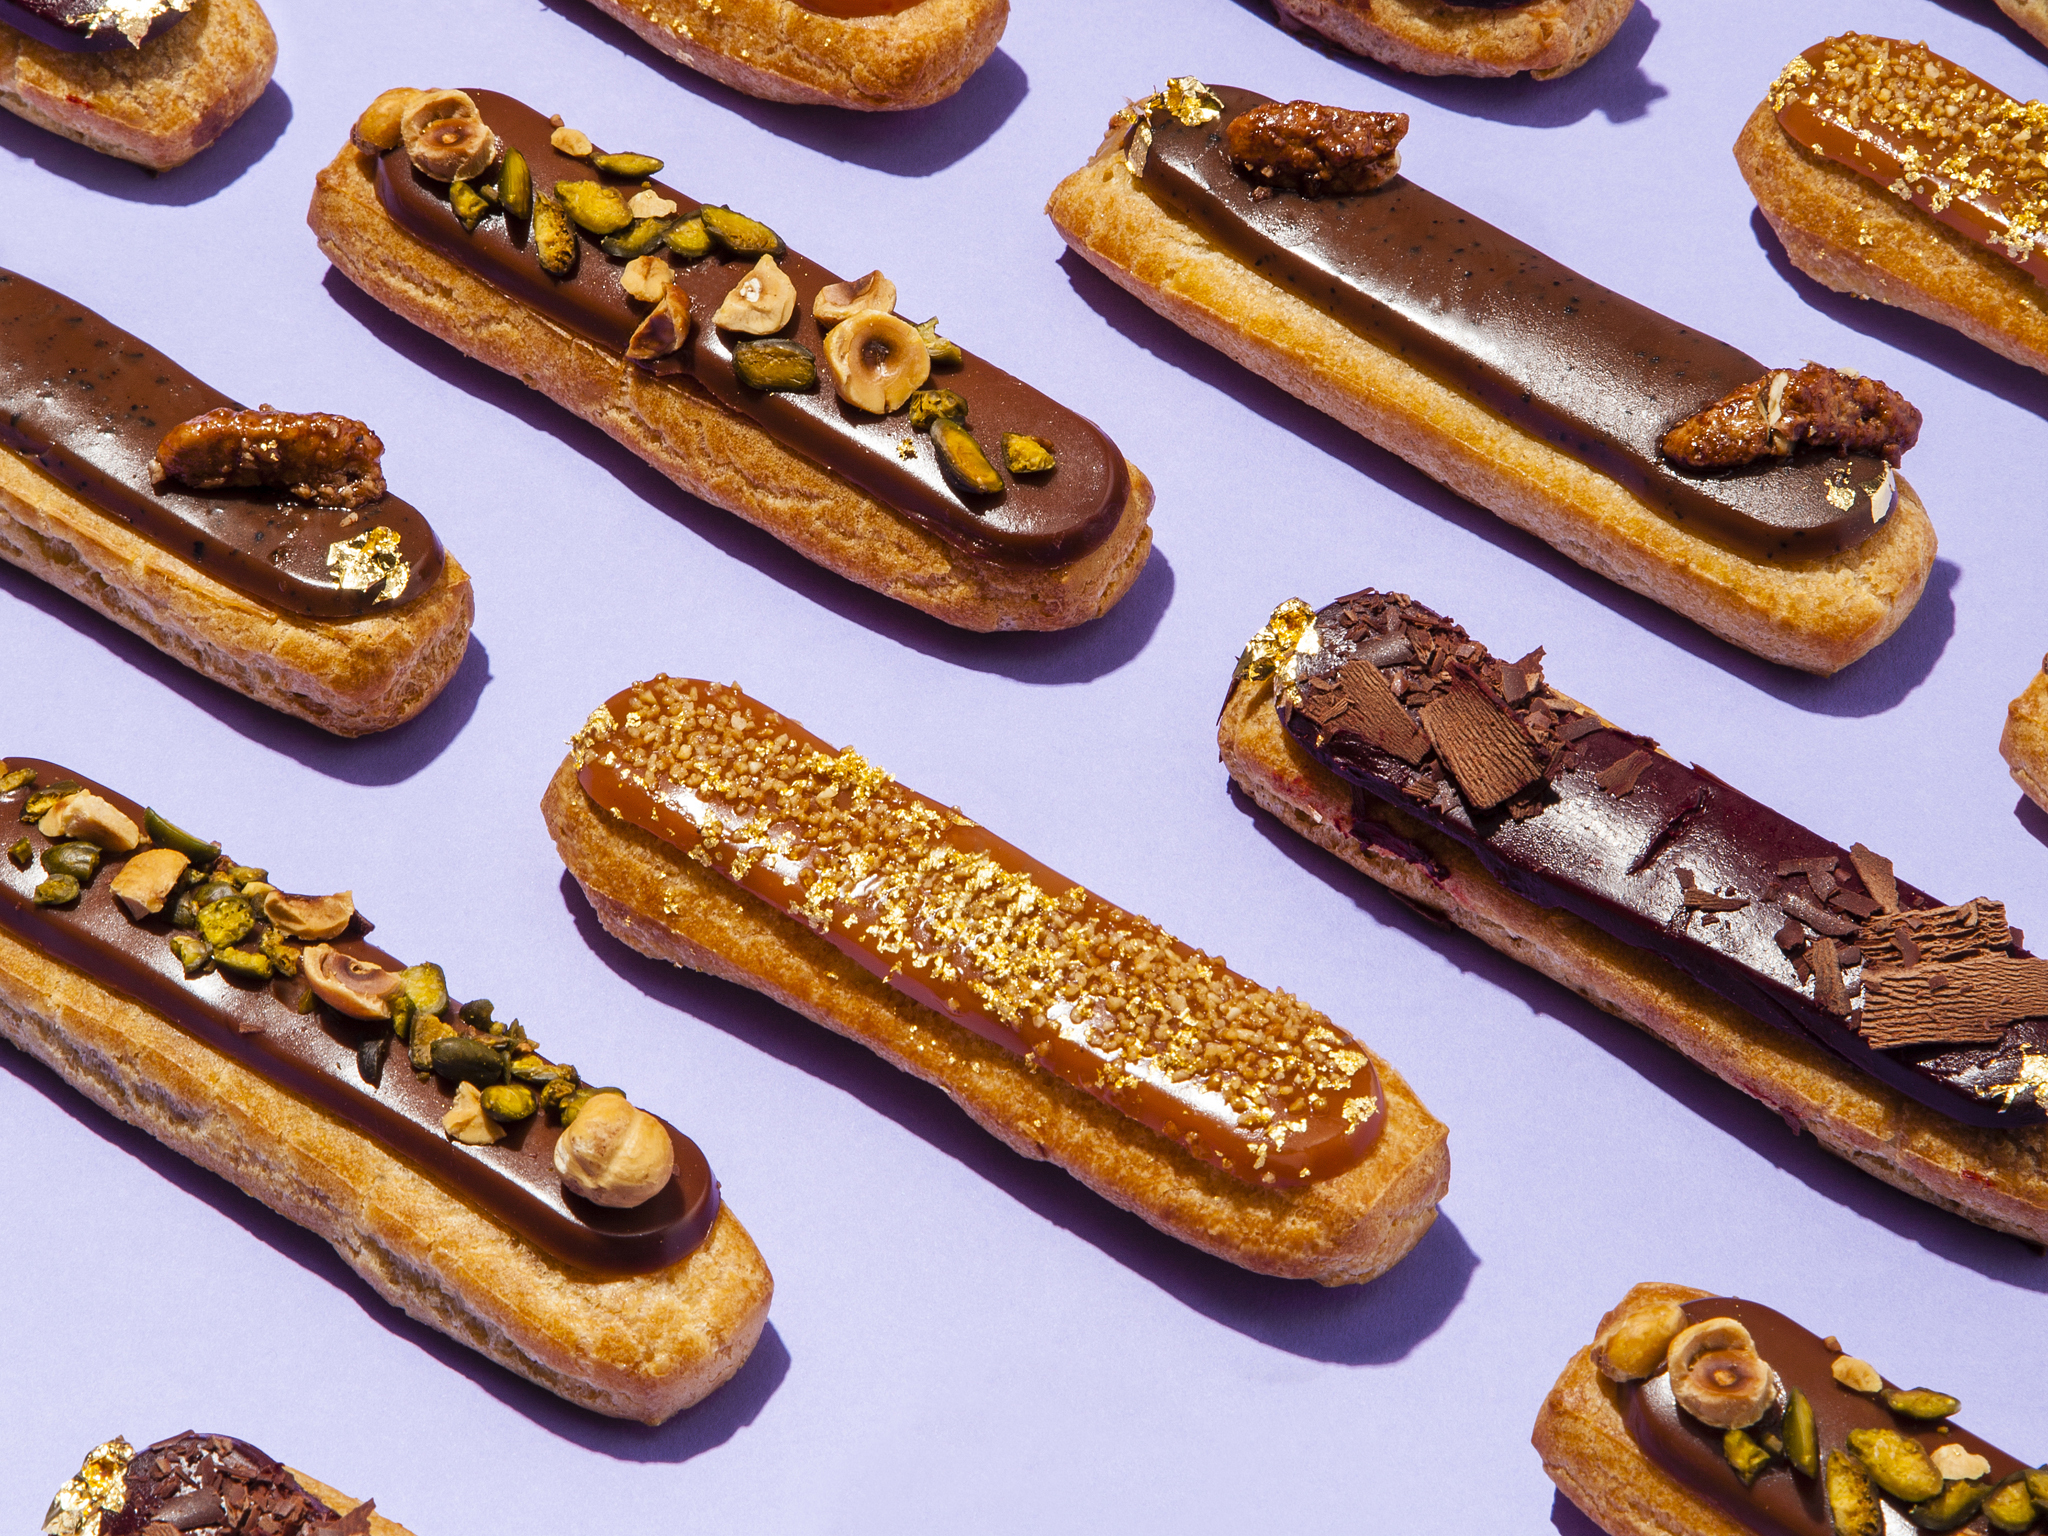 mad desserts in london, pierre marcolini, eclair